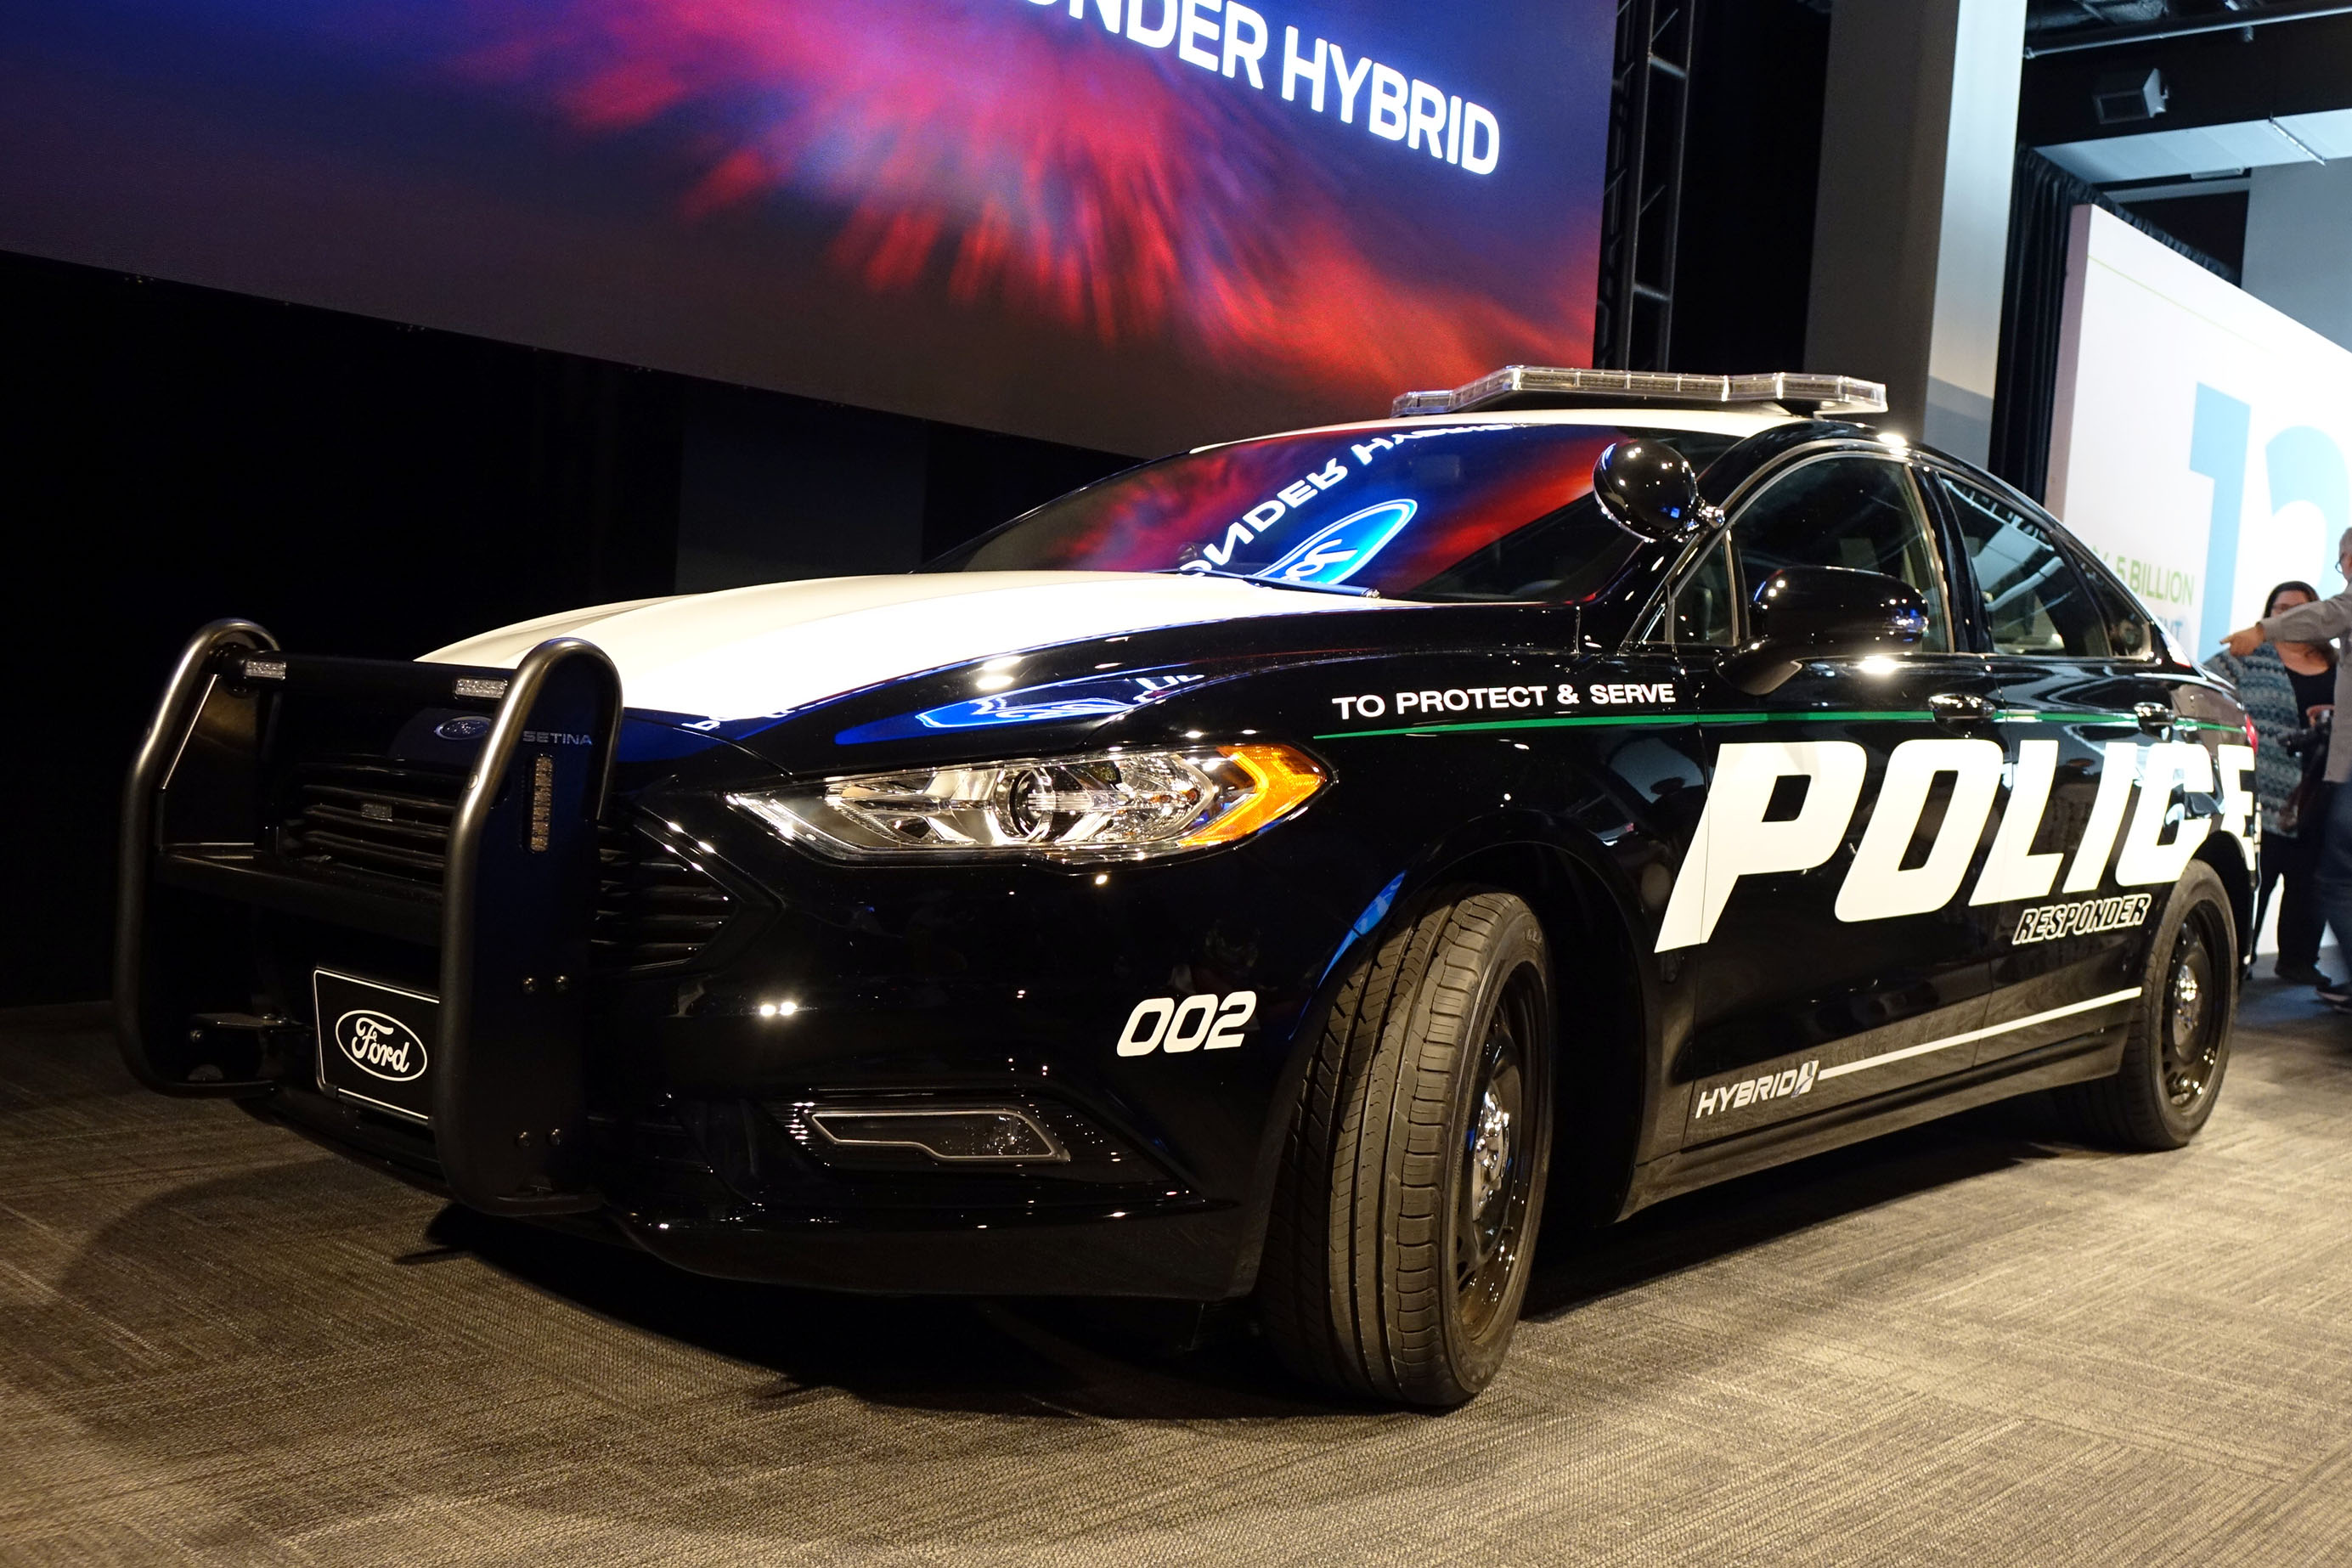 Ford requests exception to electric car noise rule for police cruisers